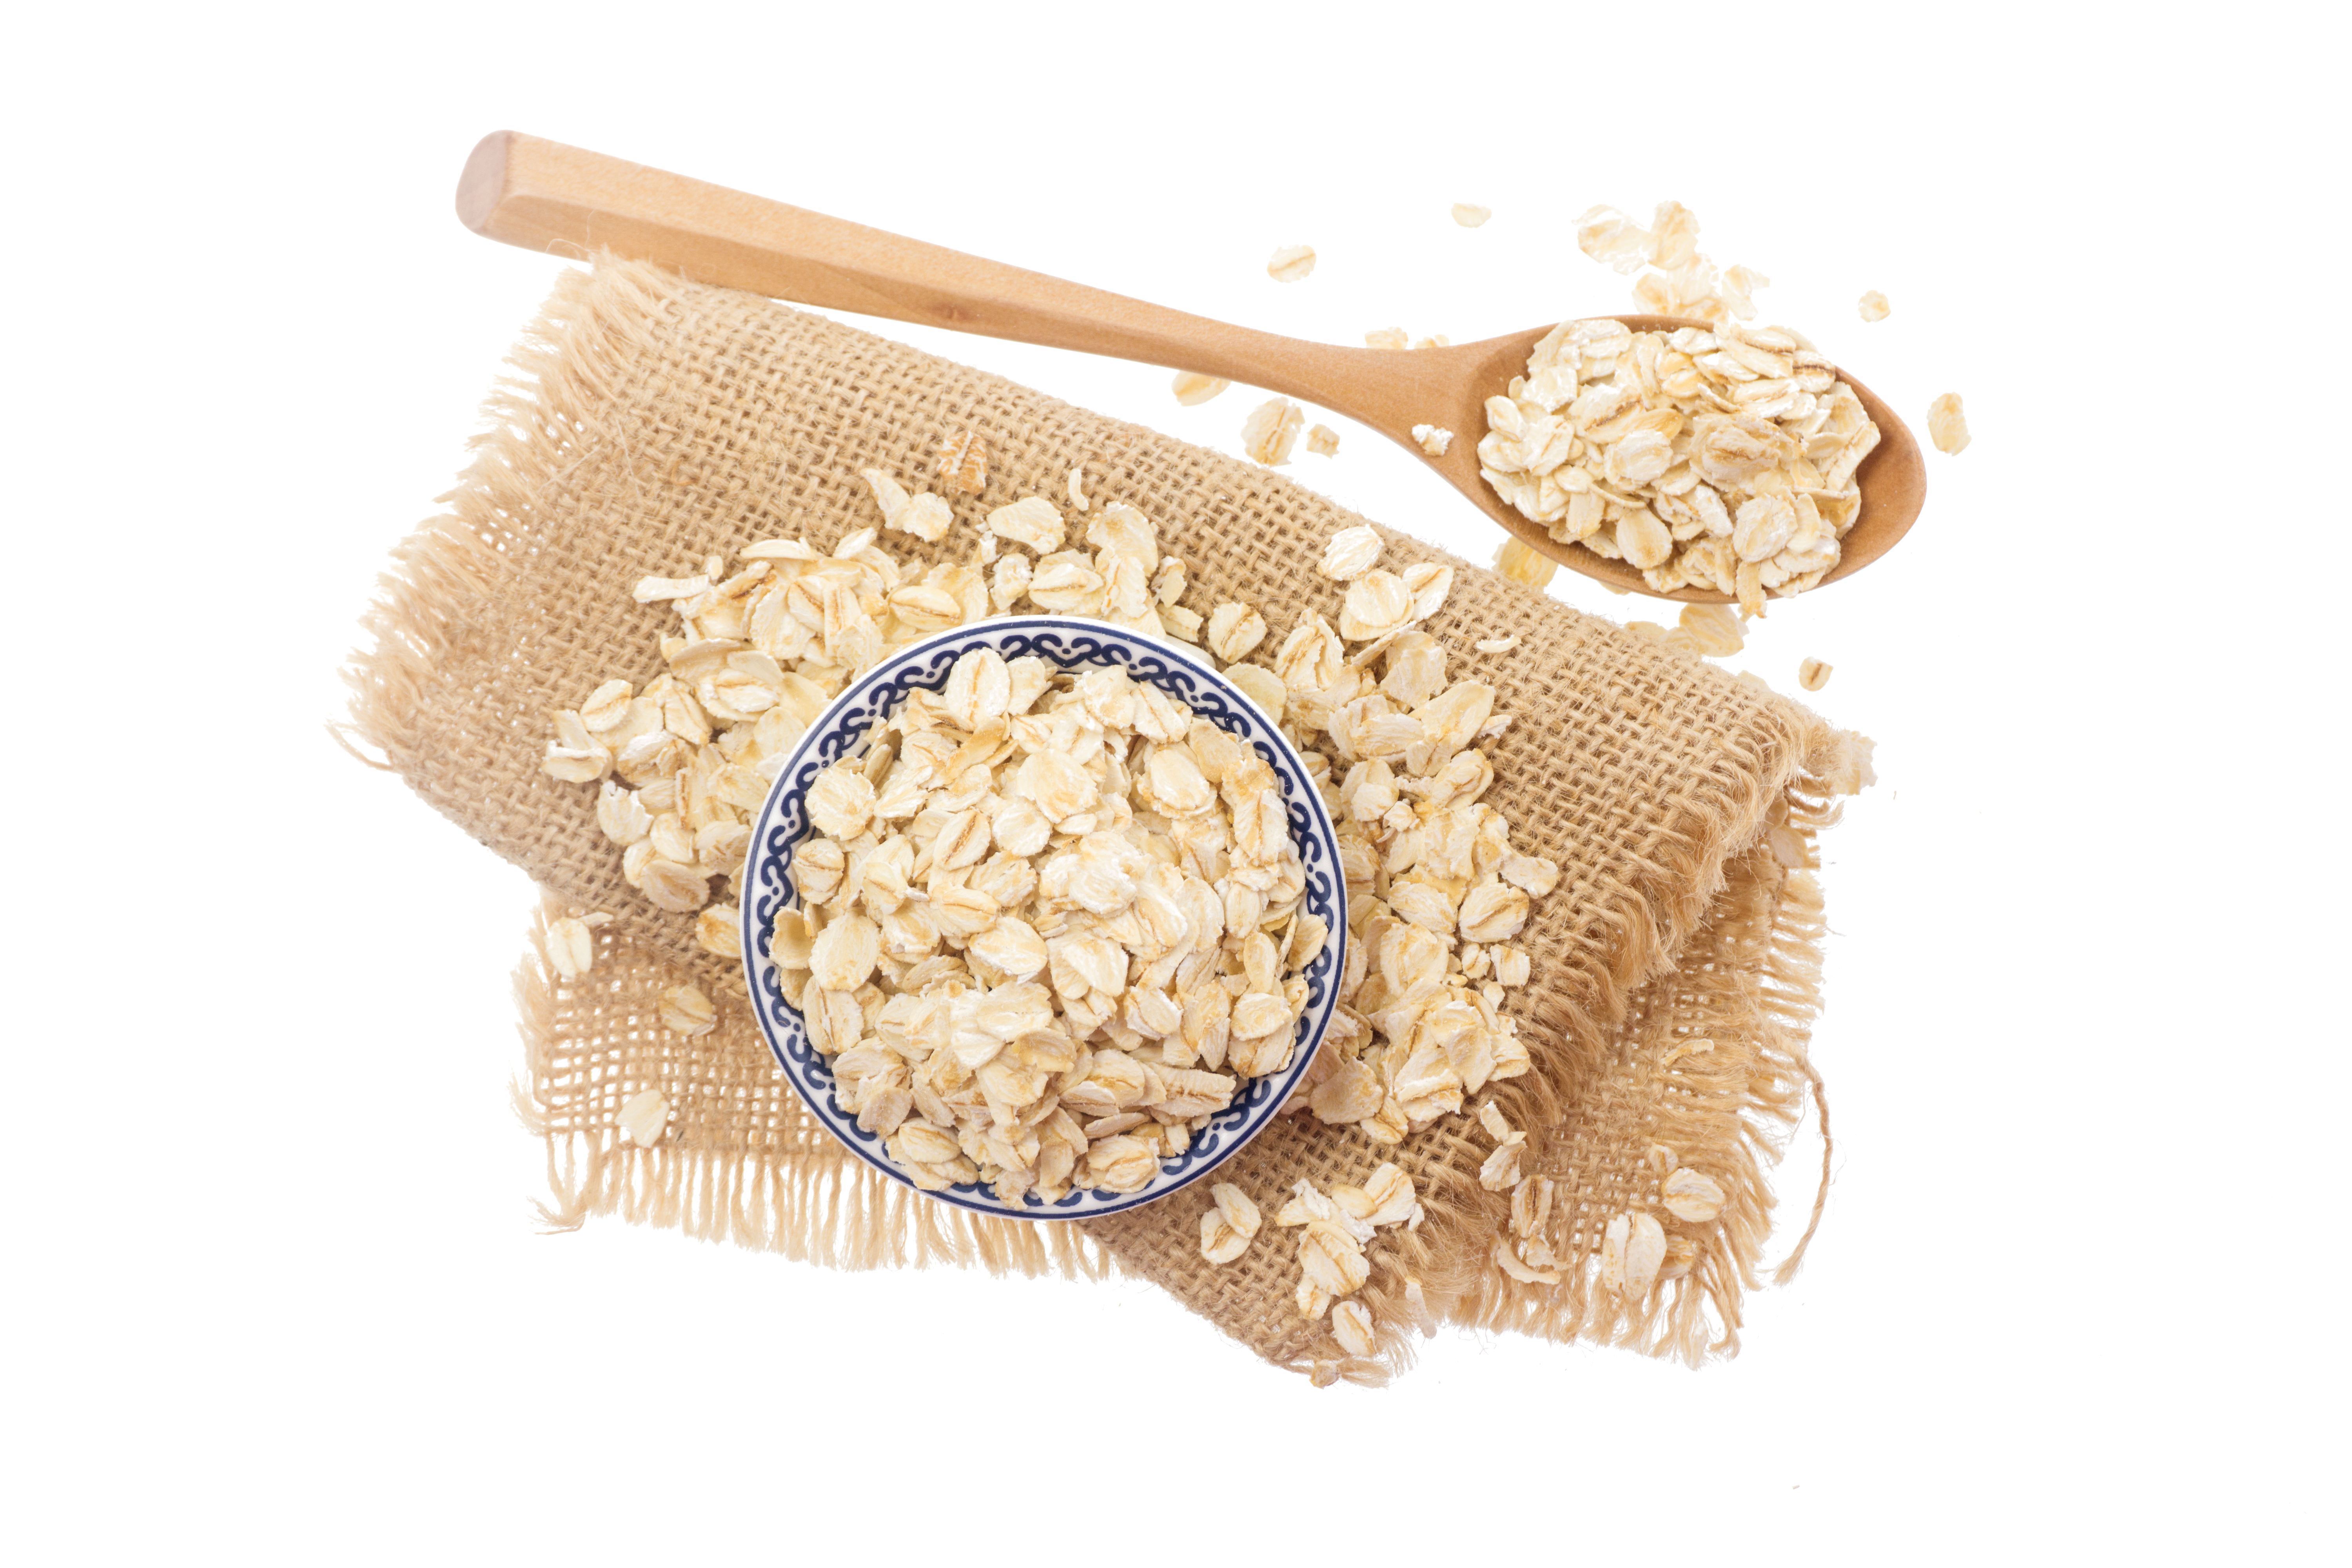 What Are the Benefits of Eating Oat Bran? | Healthy Eating